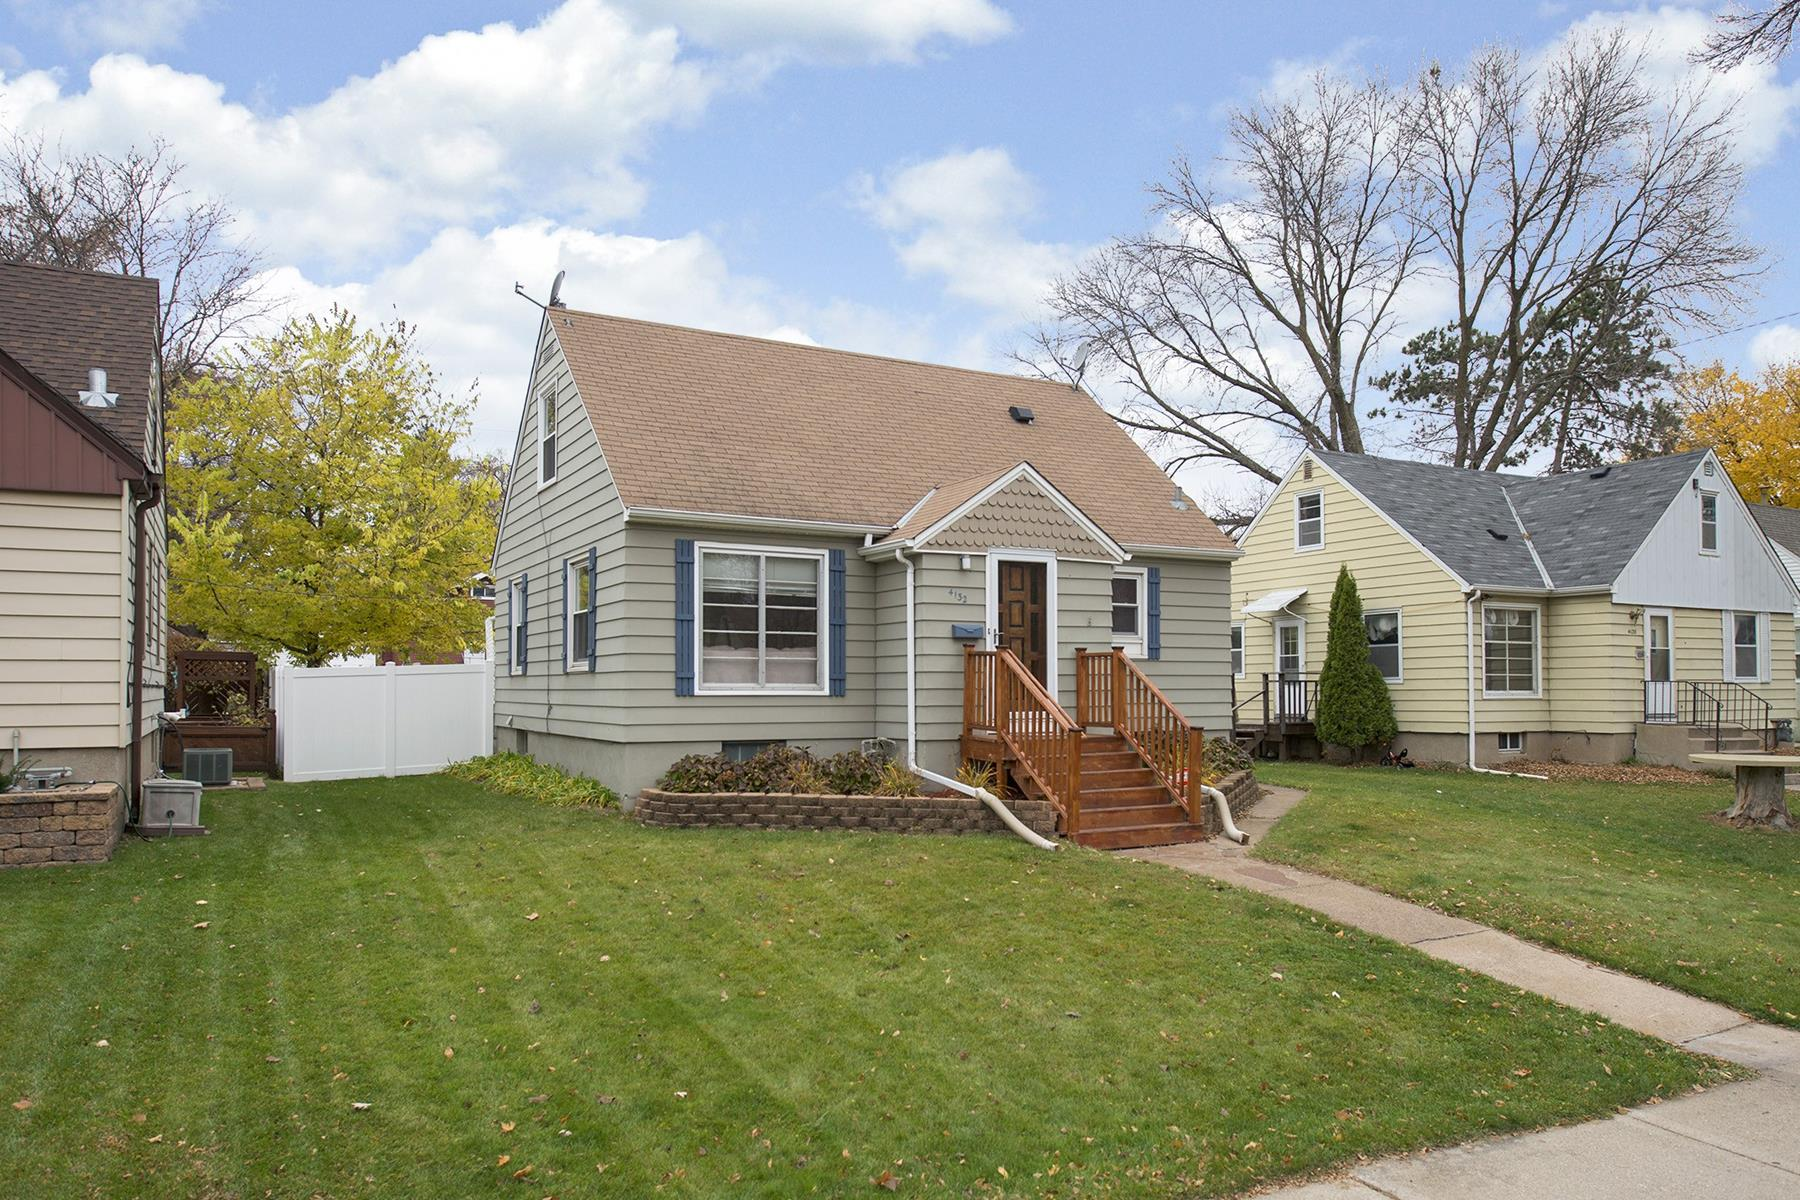 Property For Sale at 4132 13th Avenue S, Minneapolis